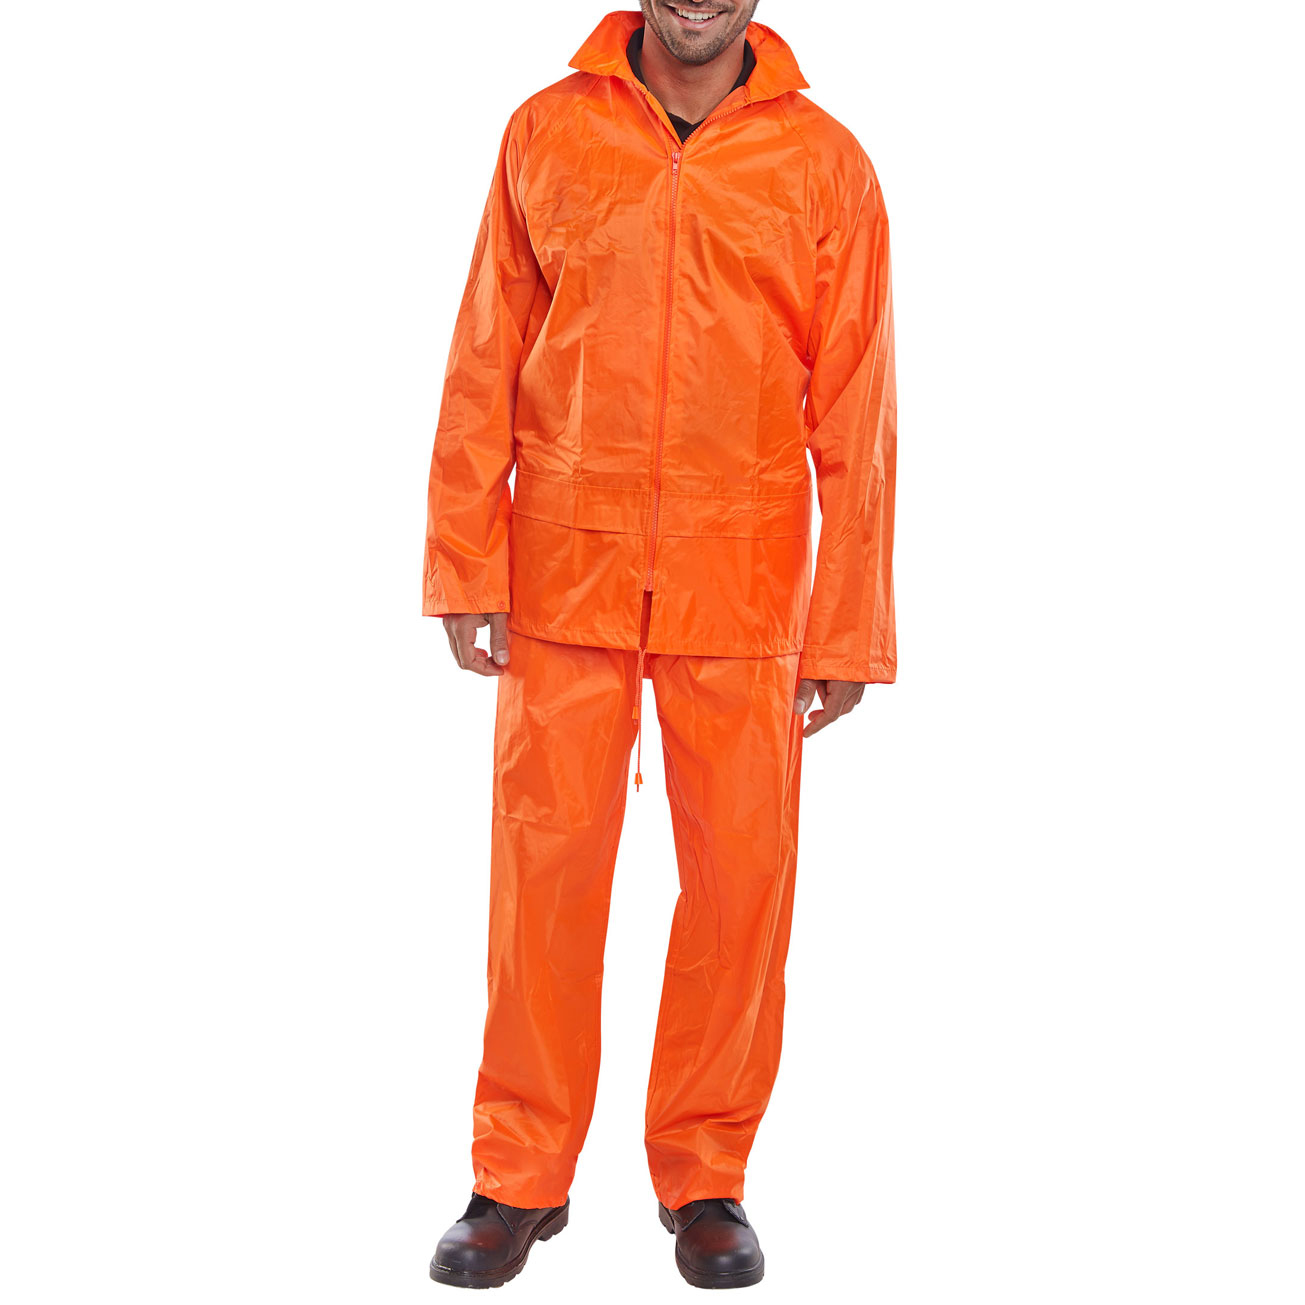 Weatherproof B-Dri Weatherproof Suit Nylon Jacket and Trouser 2XL Orange Ref NBDSORXXL *Up to 3 Day Leadtime*